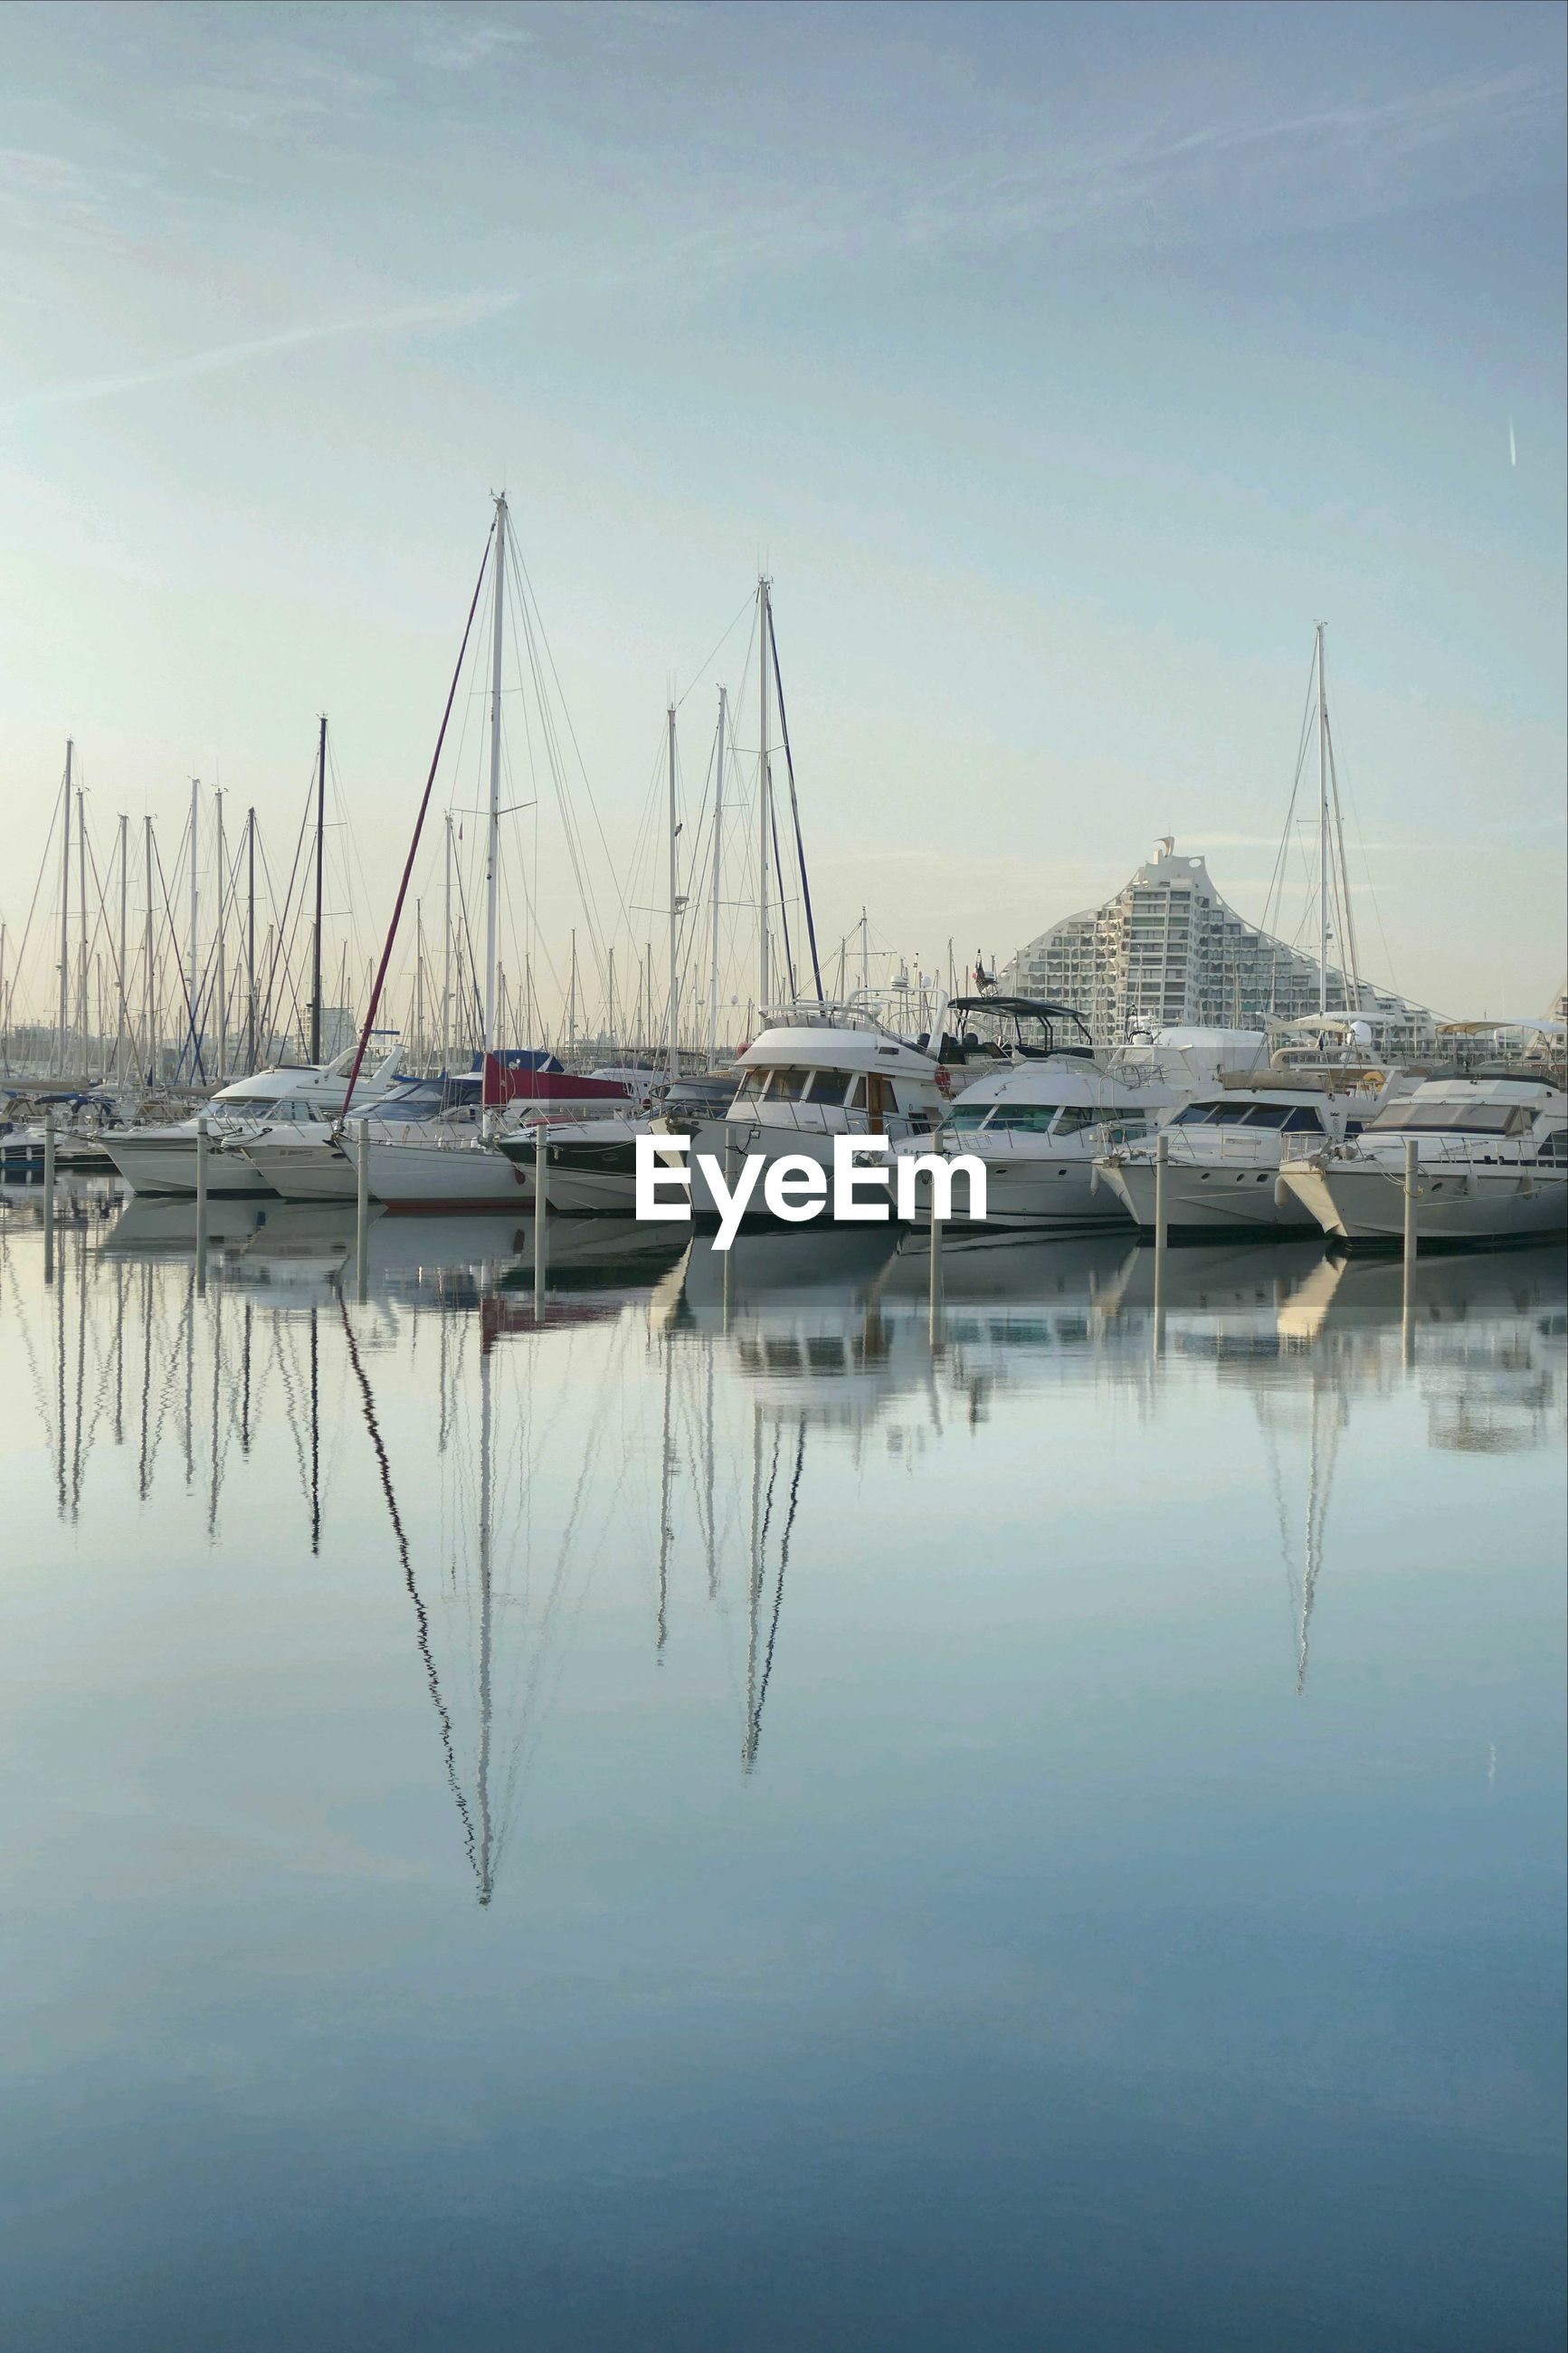 reflection, water, sky, moored, transportation, mode of transport, harbor, nautical vessel, no people, built structure, outdoors, standing water, building exterior, nature, architecture, day, mast, tree, sailboat, yacht